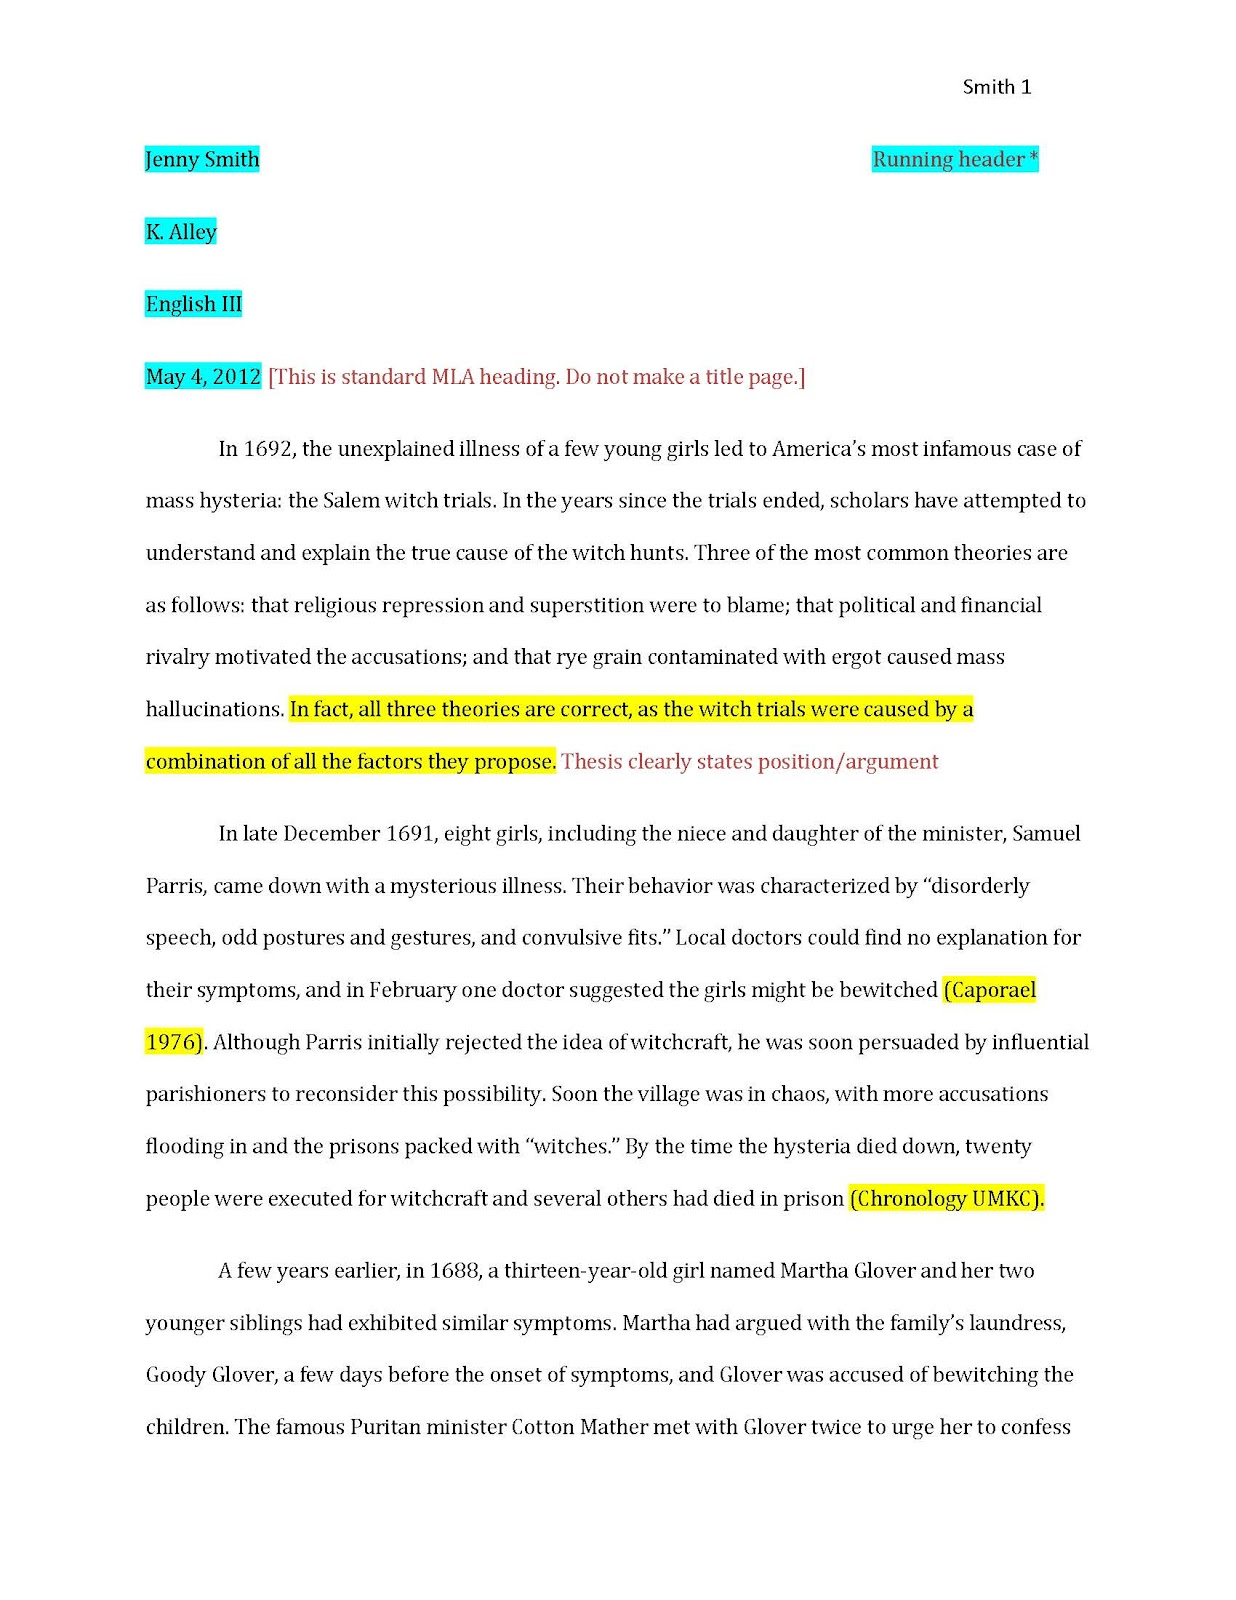 Worksheet How To Do Division On Paper citation in essay wwwgxart purdue owl text online writing college division and classification examples division